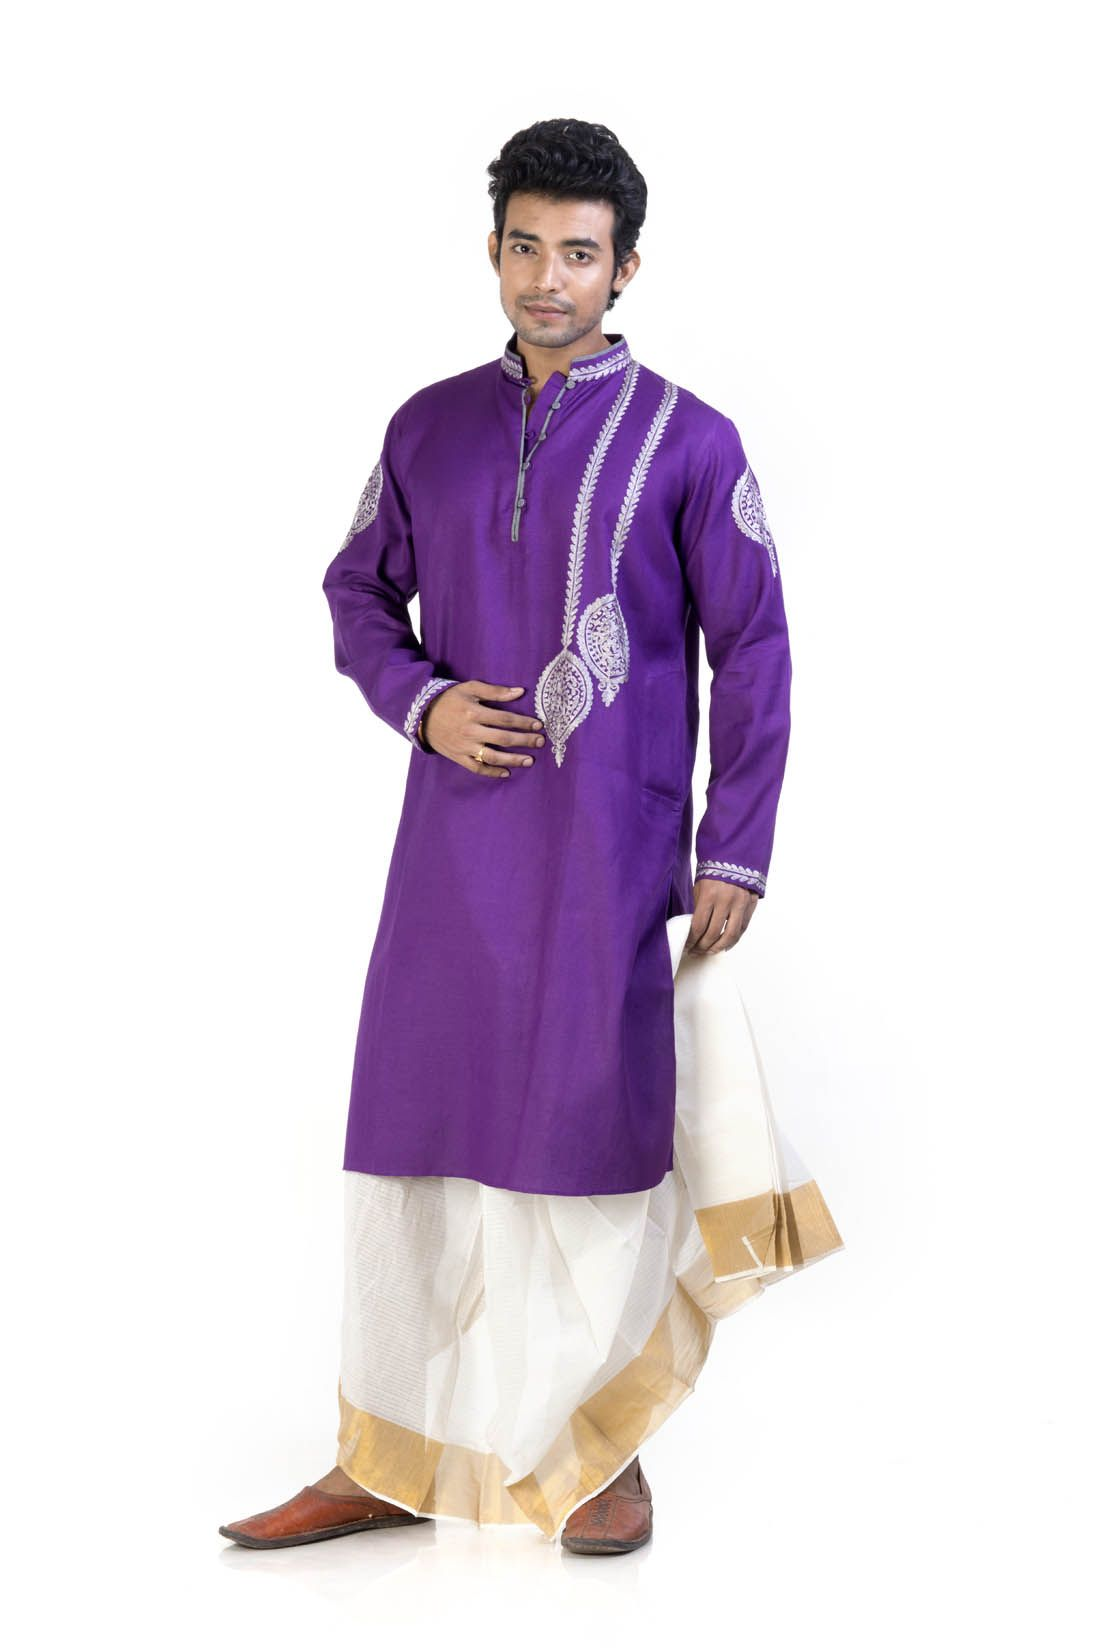 Royal Riwaz mens kurta | Fashion for men | Pinterest